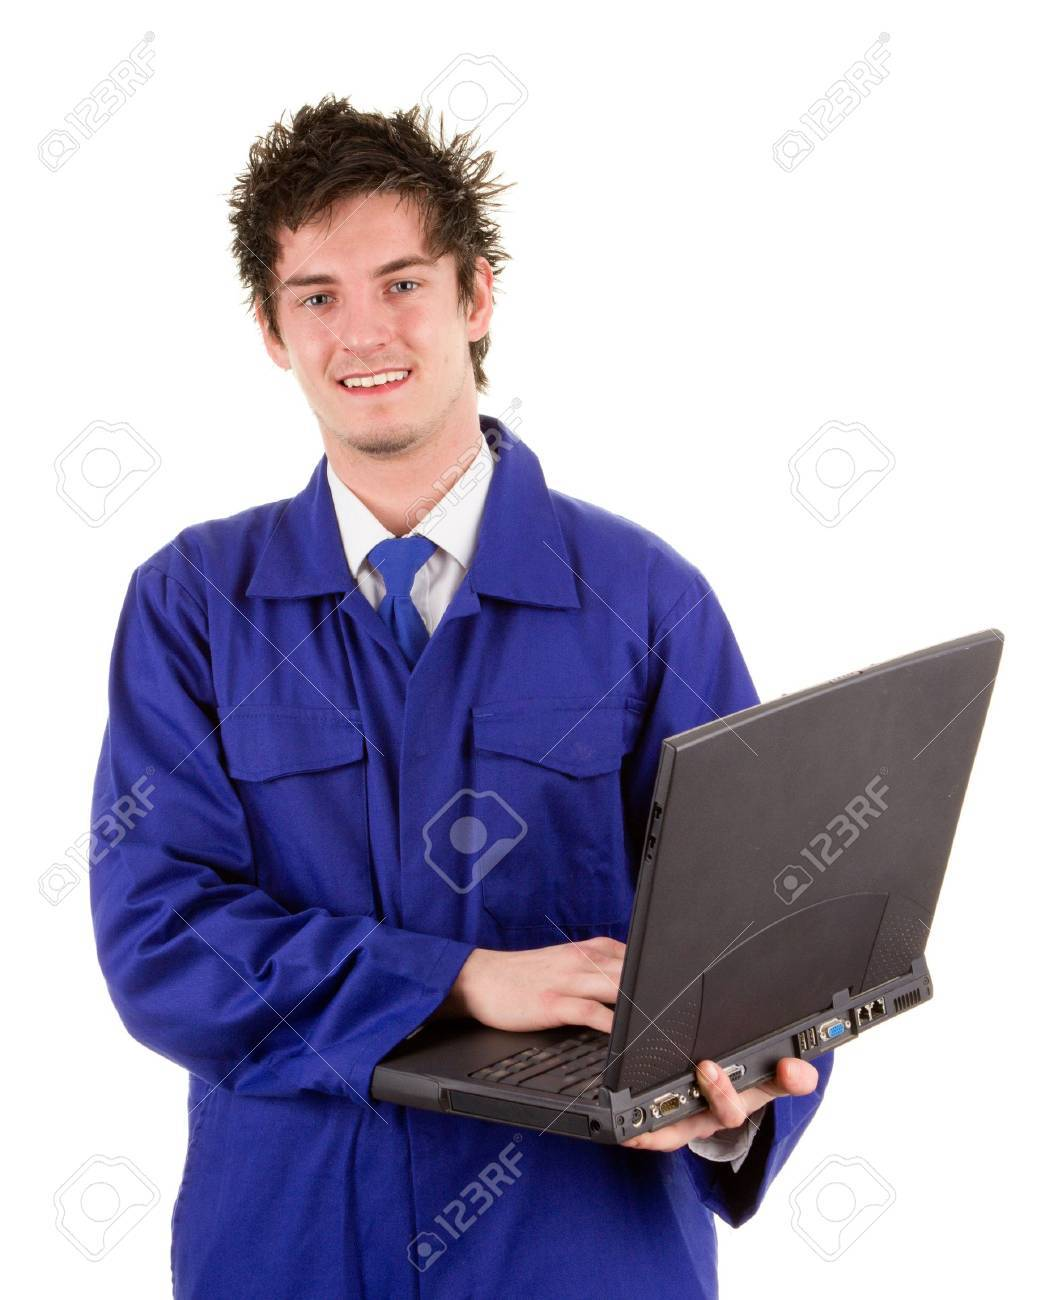 A workman holding a laptop smiling, isolated on white Stock Photo - 14463076